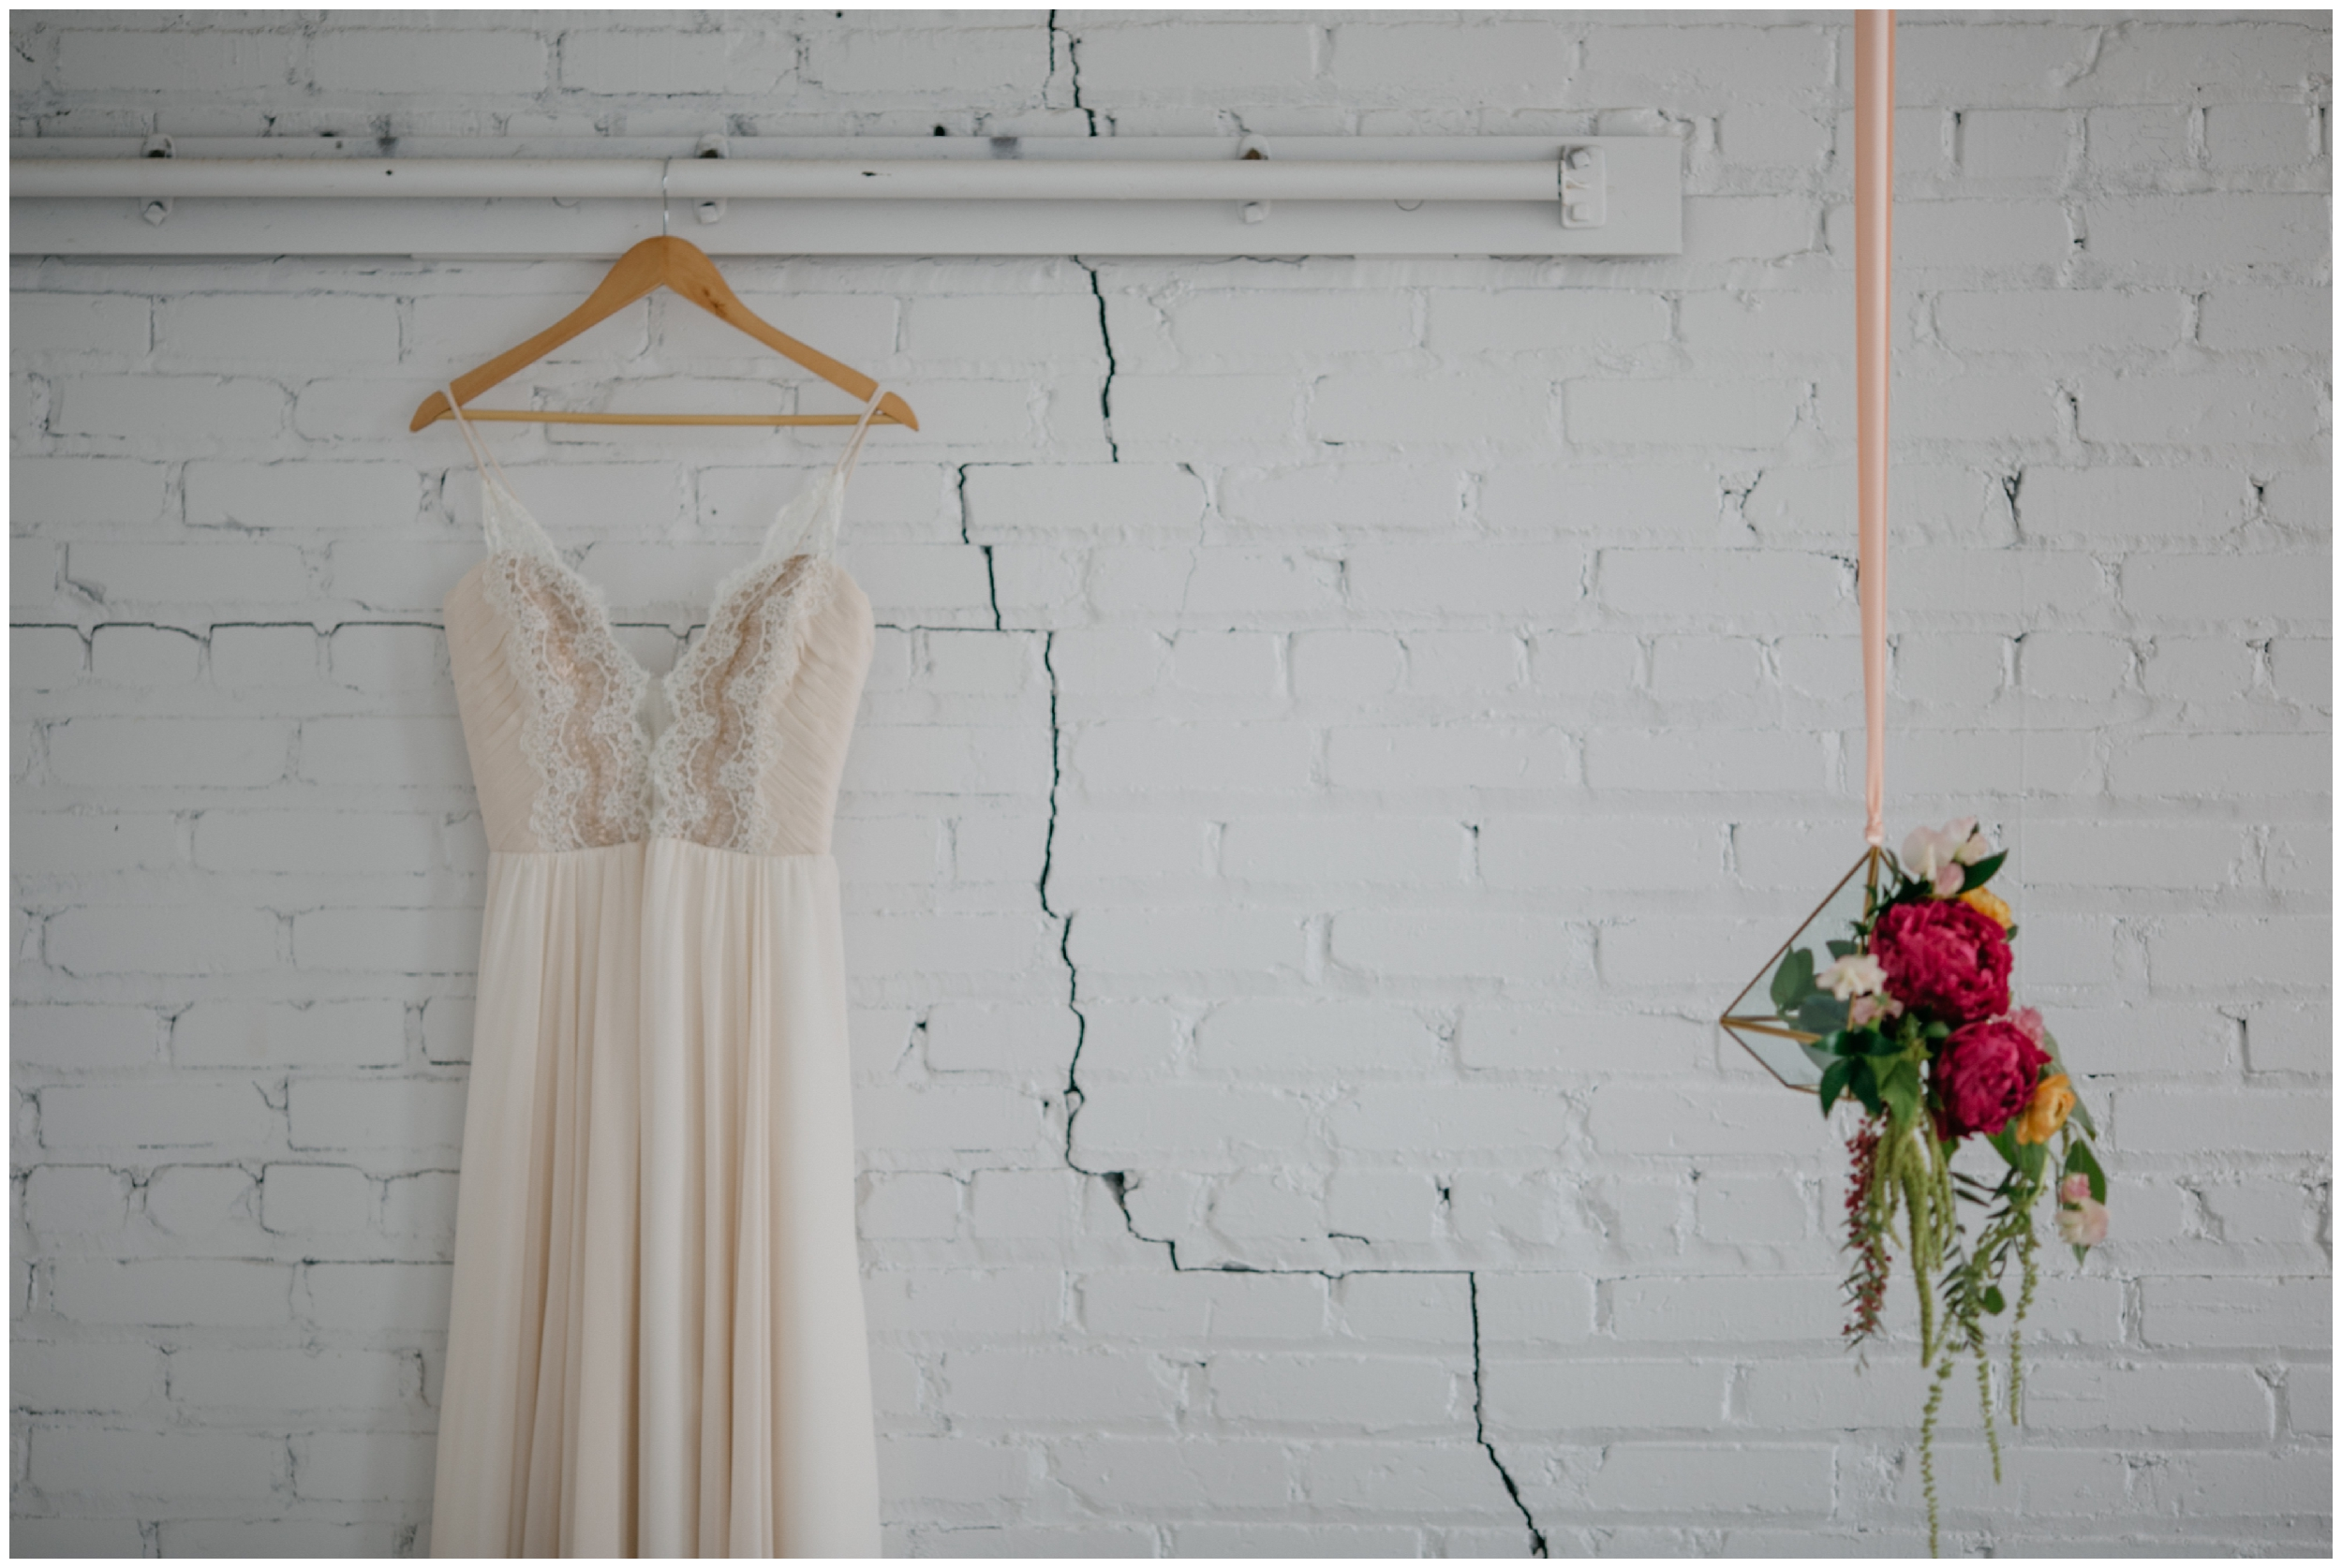 Simple and romantic wedding dress hanging at the NP Event Space